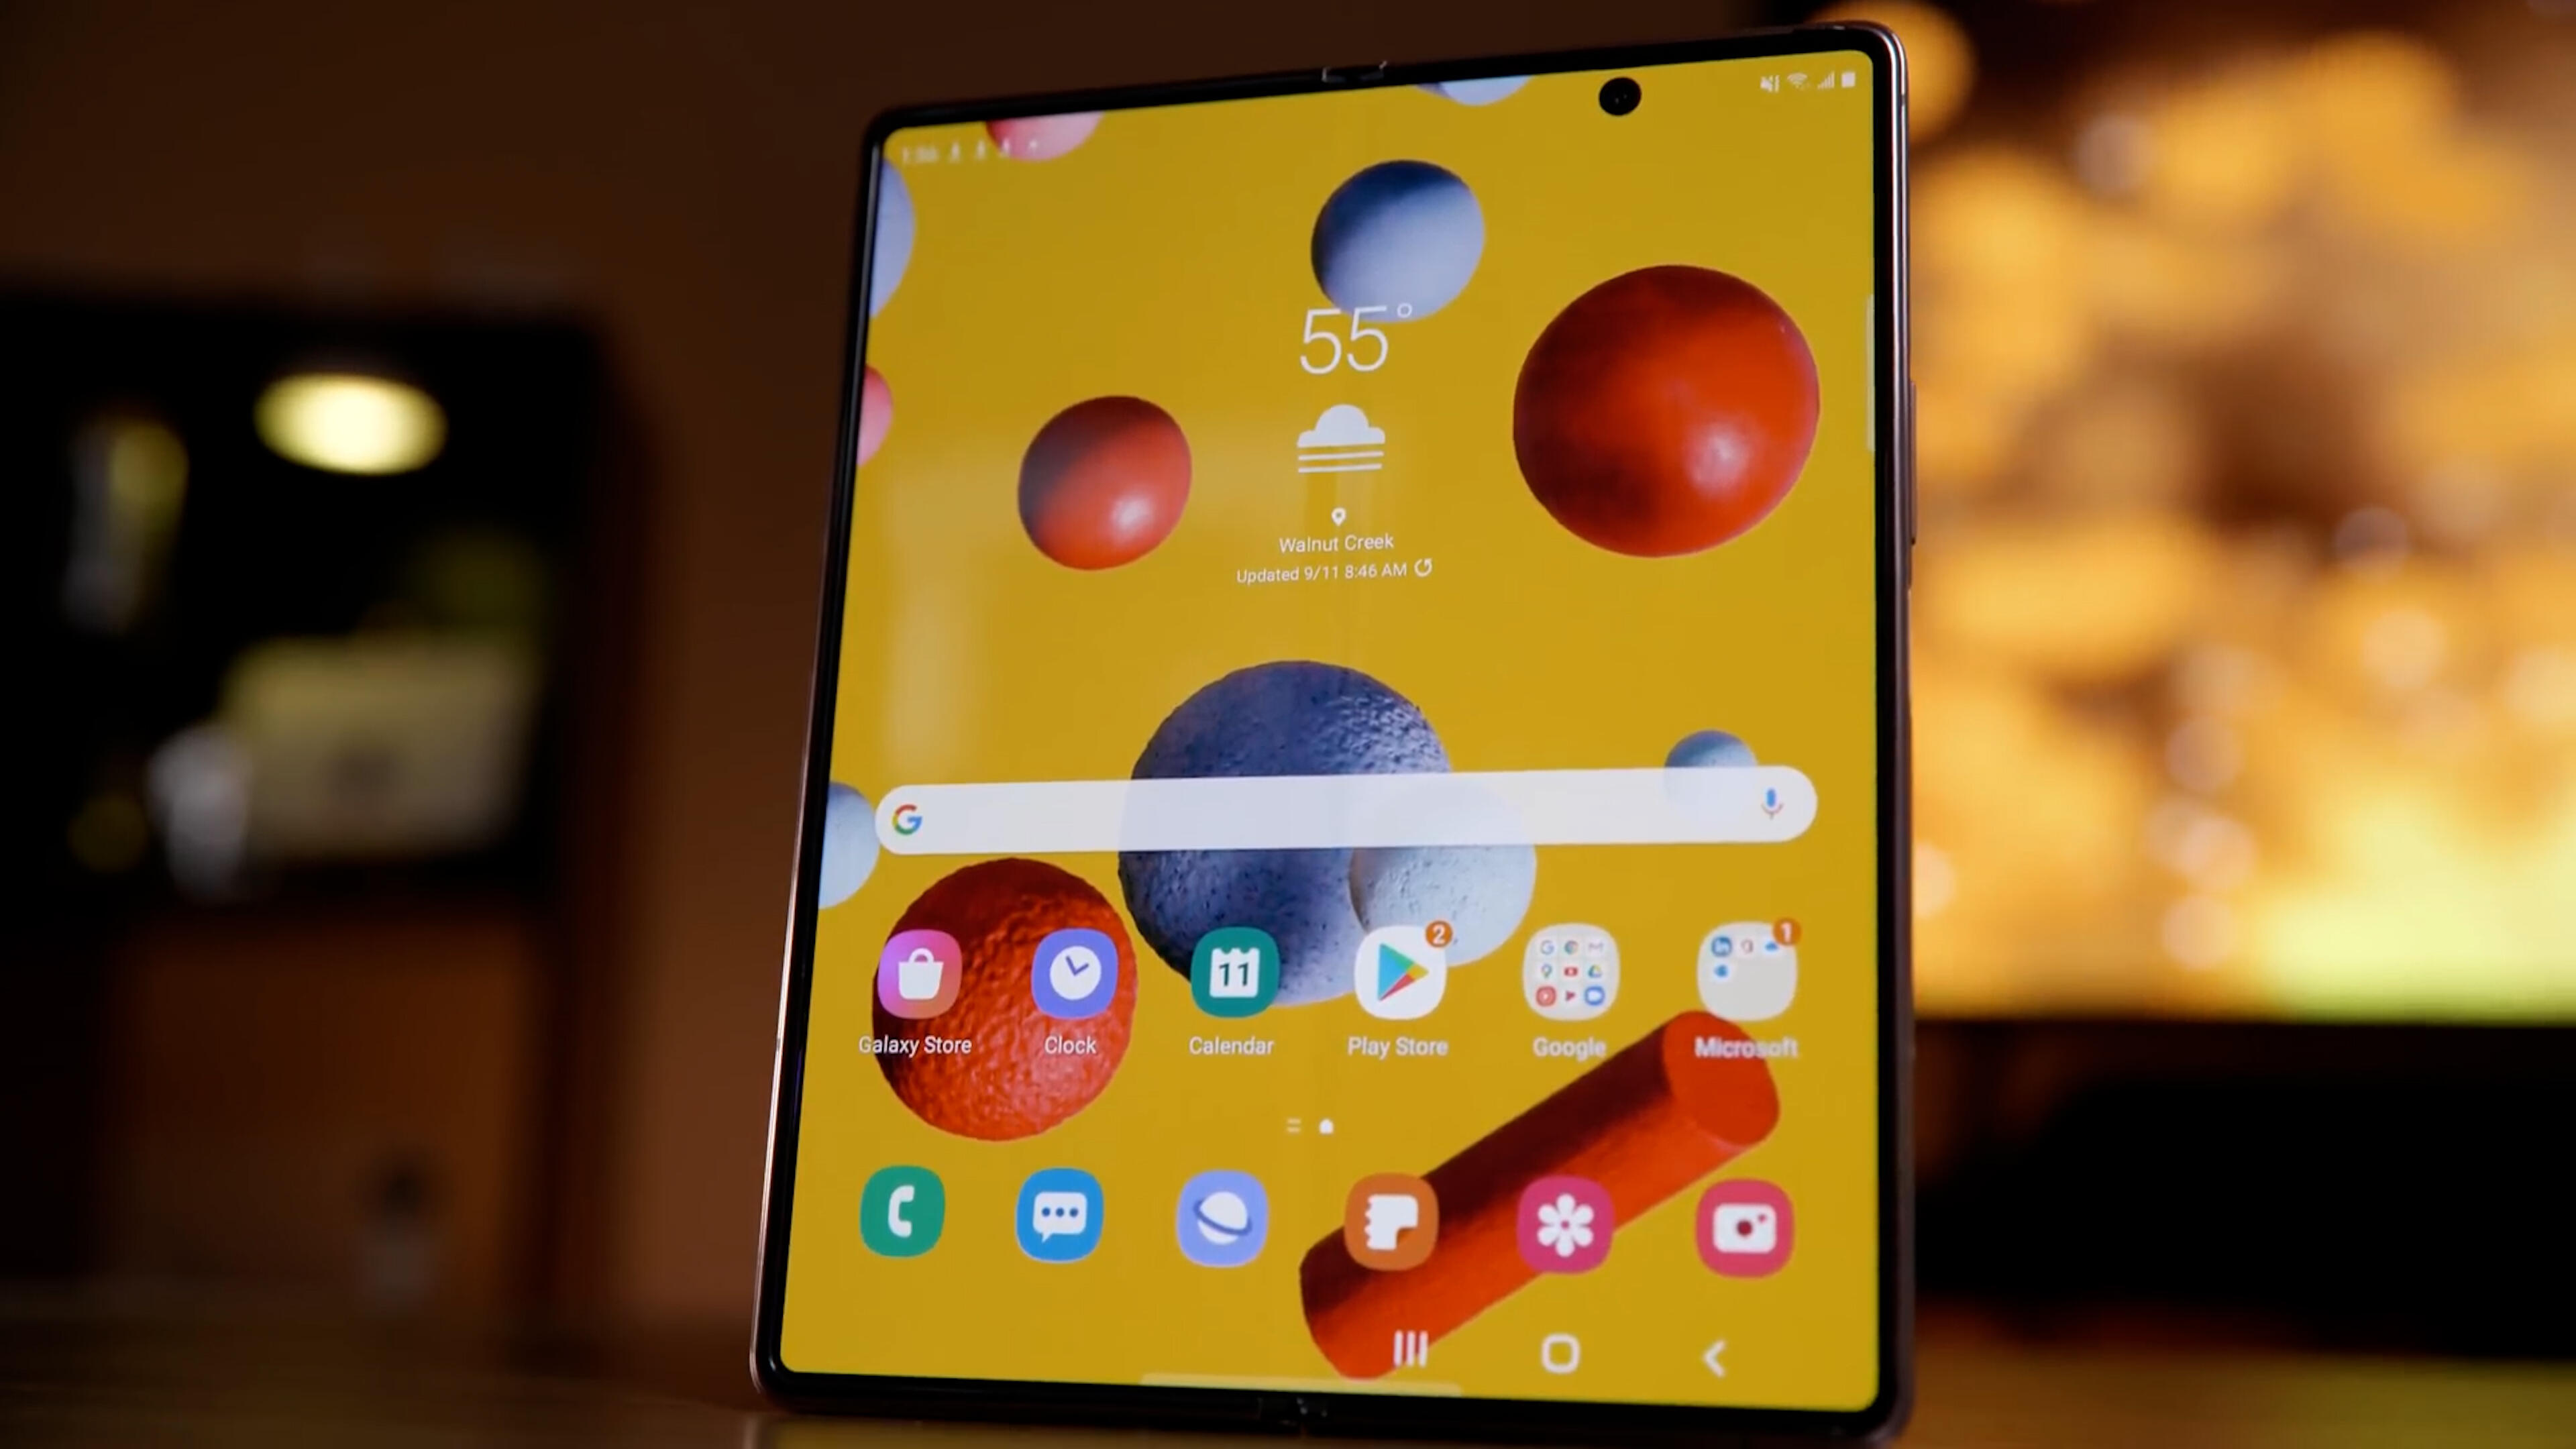 Video: Samsung Galaxy Z Fold 3 has a hidden camera?